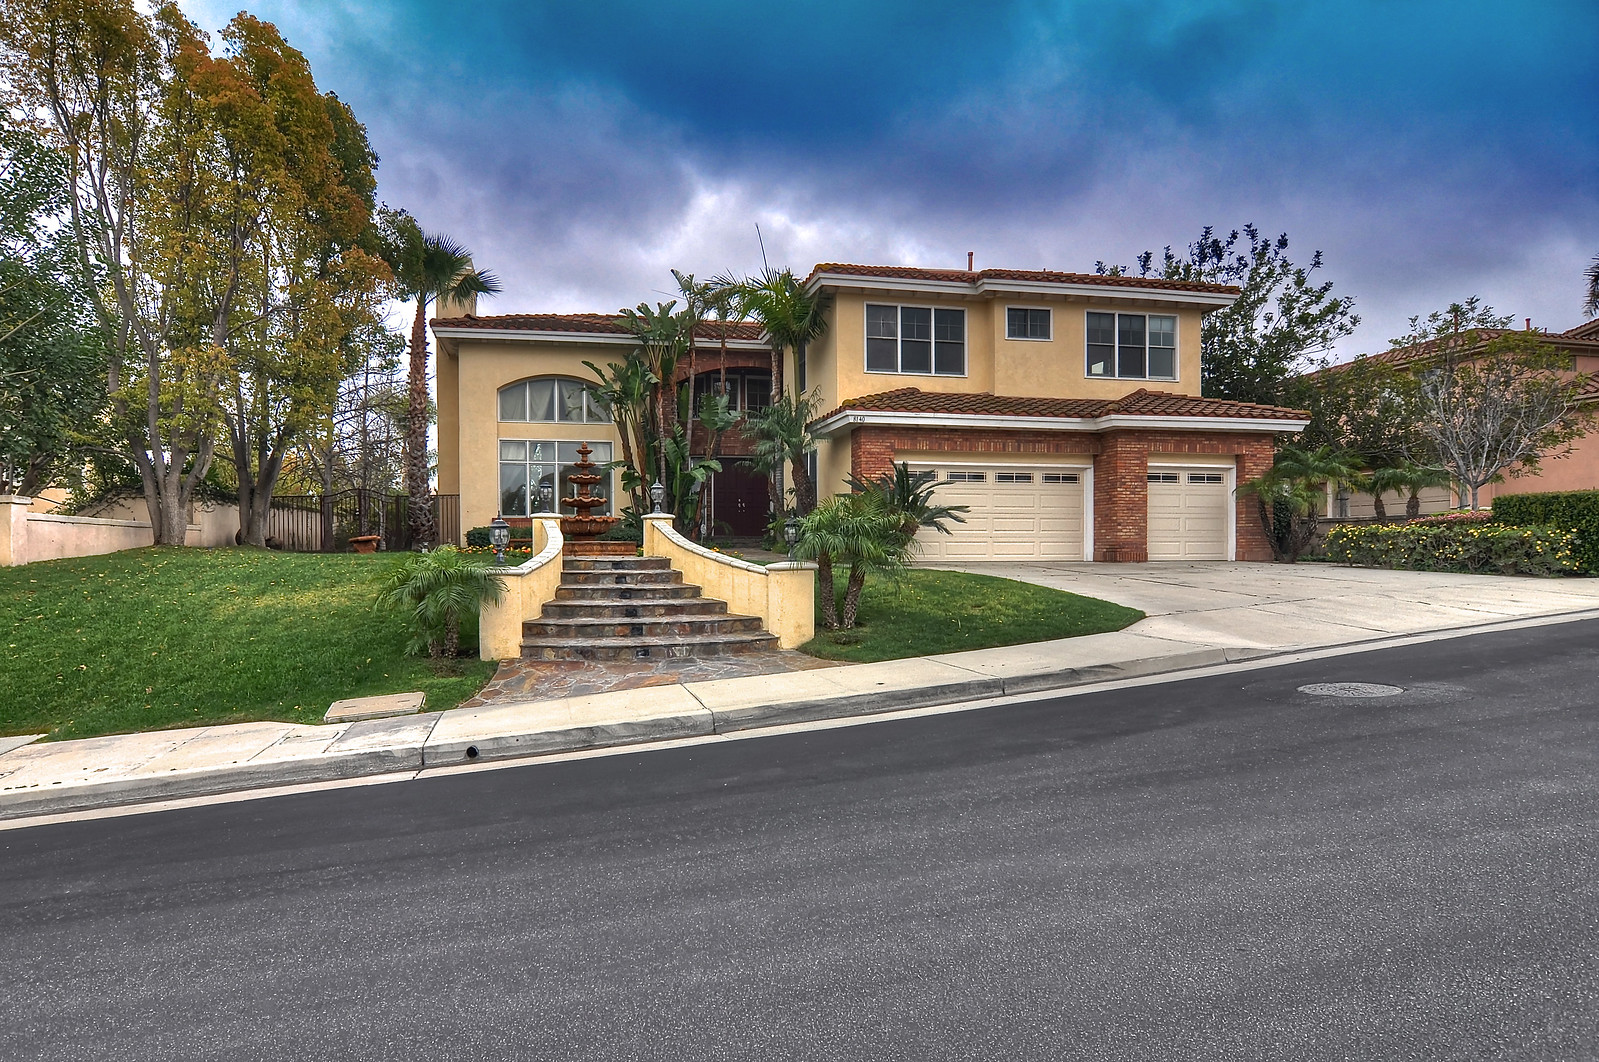 8140 E Morning Sun Ln | Open House Sun March 16 from 1-4 pm